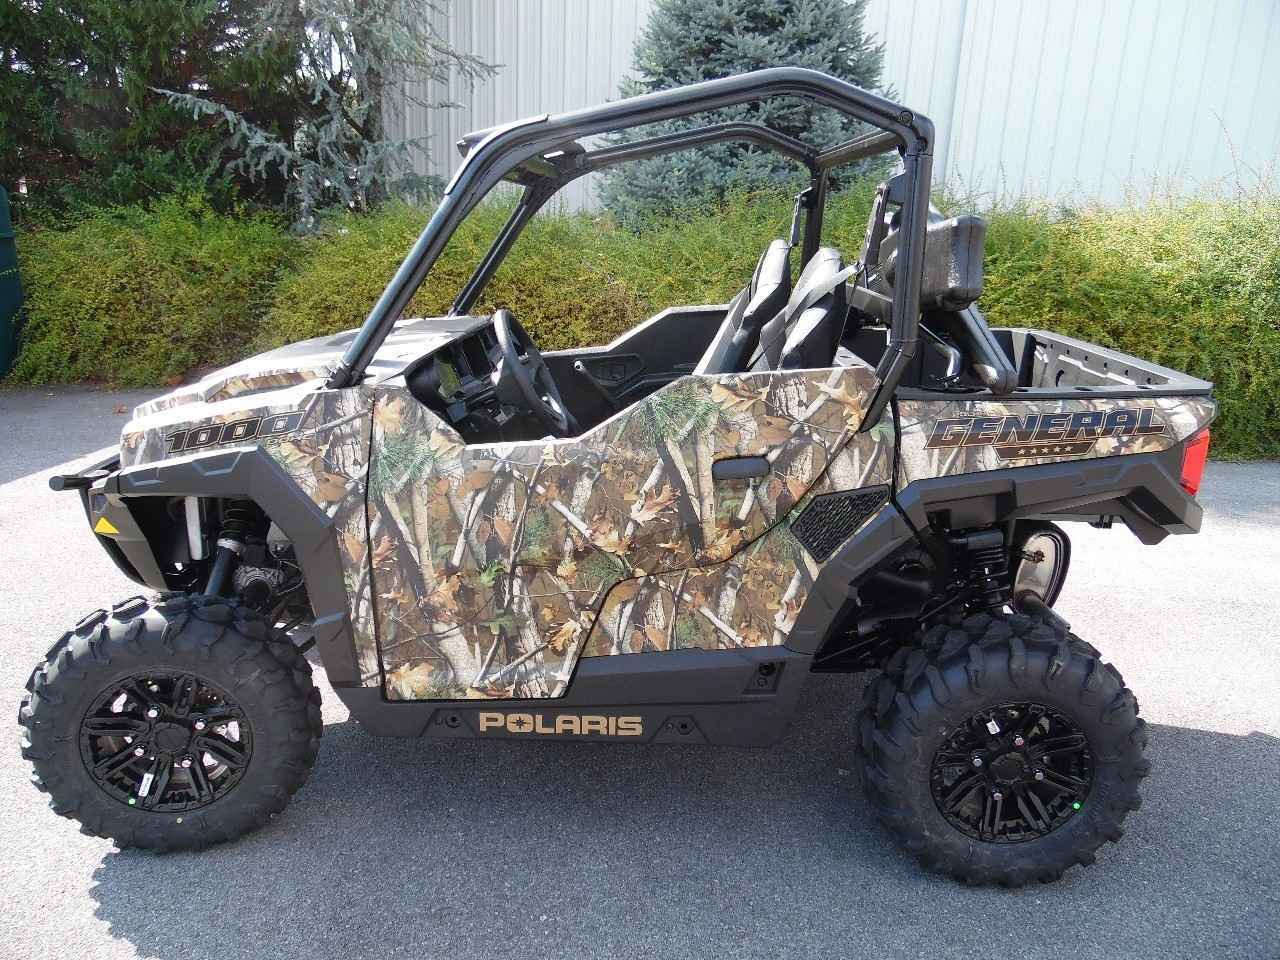 new 2017 polaris general 1000 eps hunter edition polaris pursuit camo atvs for sale in tennessee. Black Bedroom Furniture Sets. Home Design Ideas